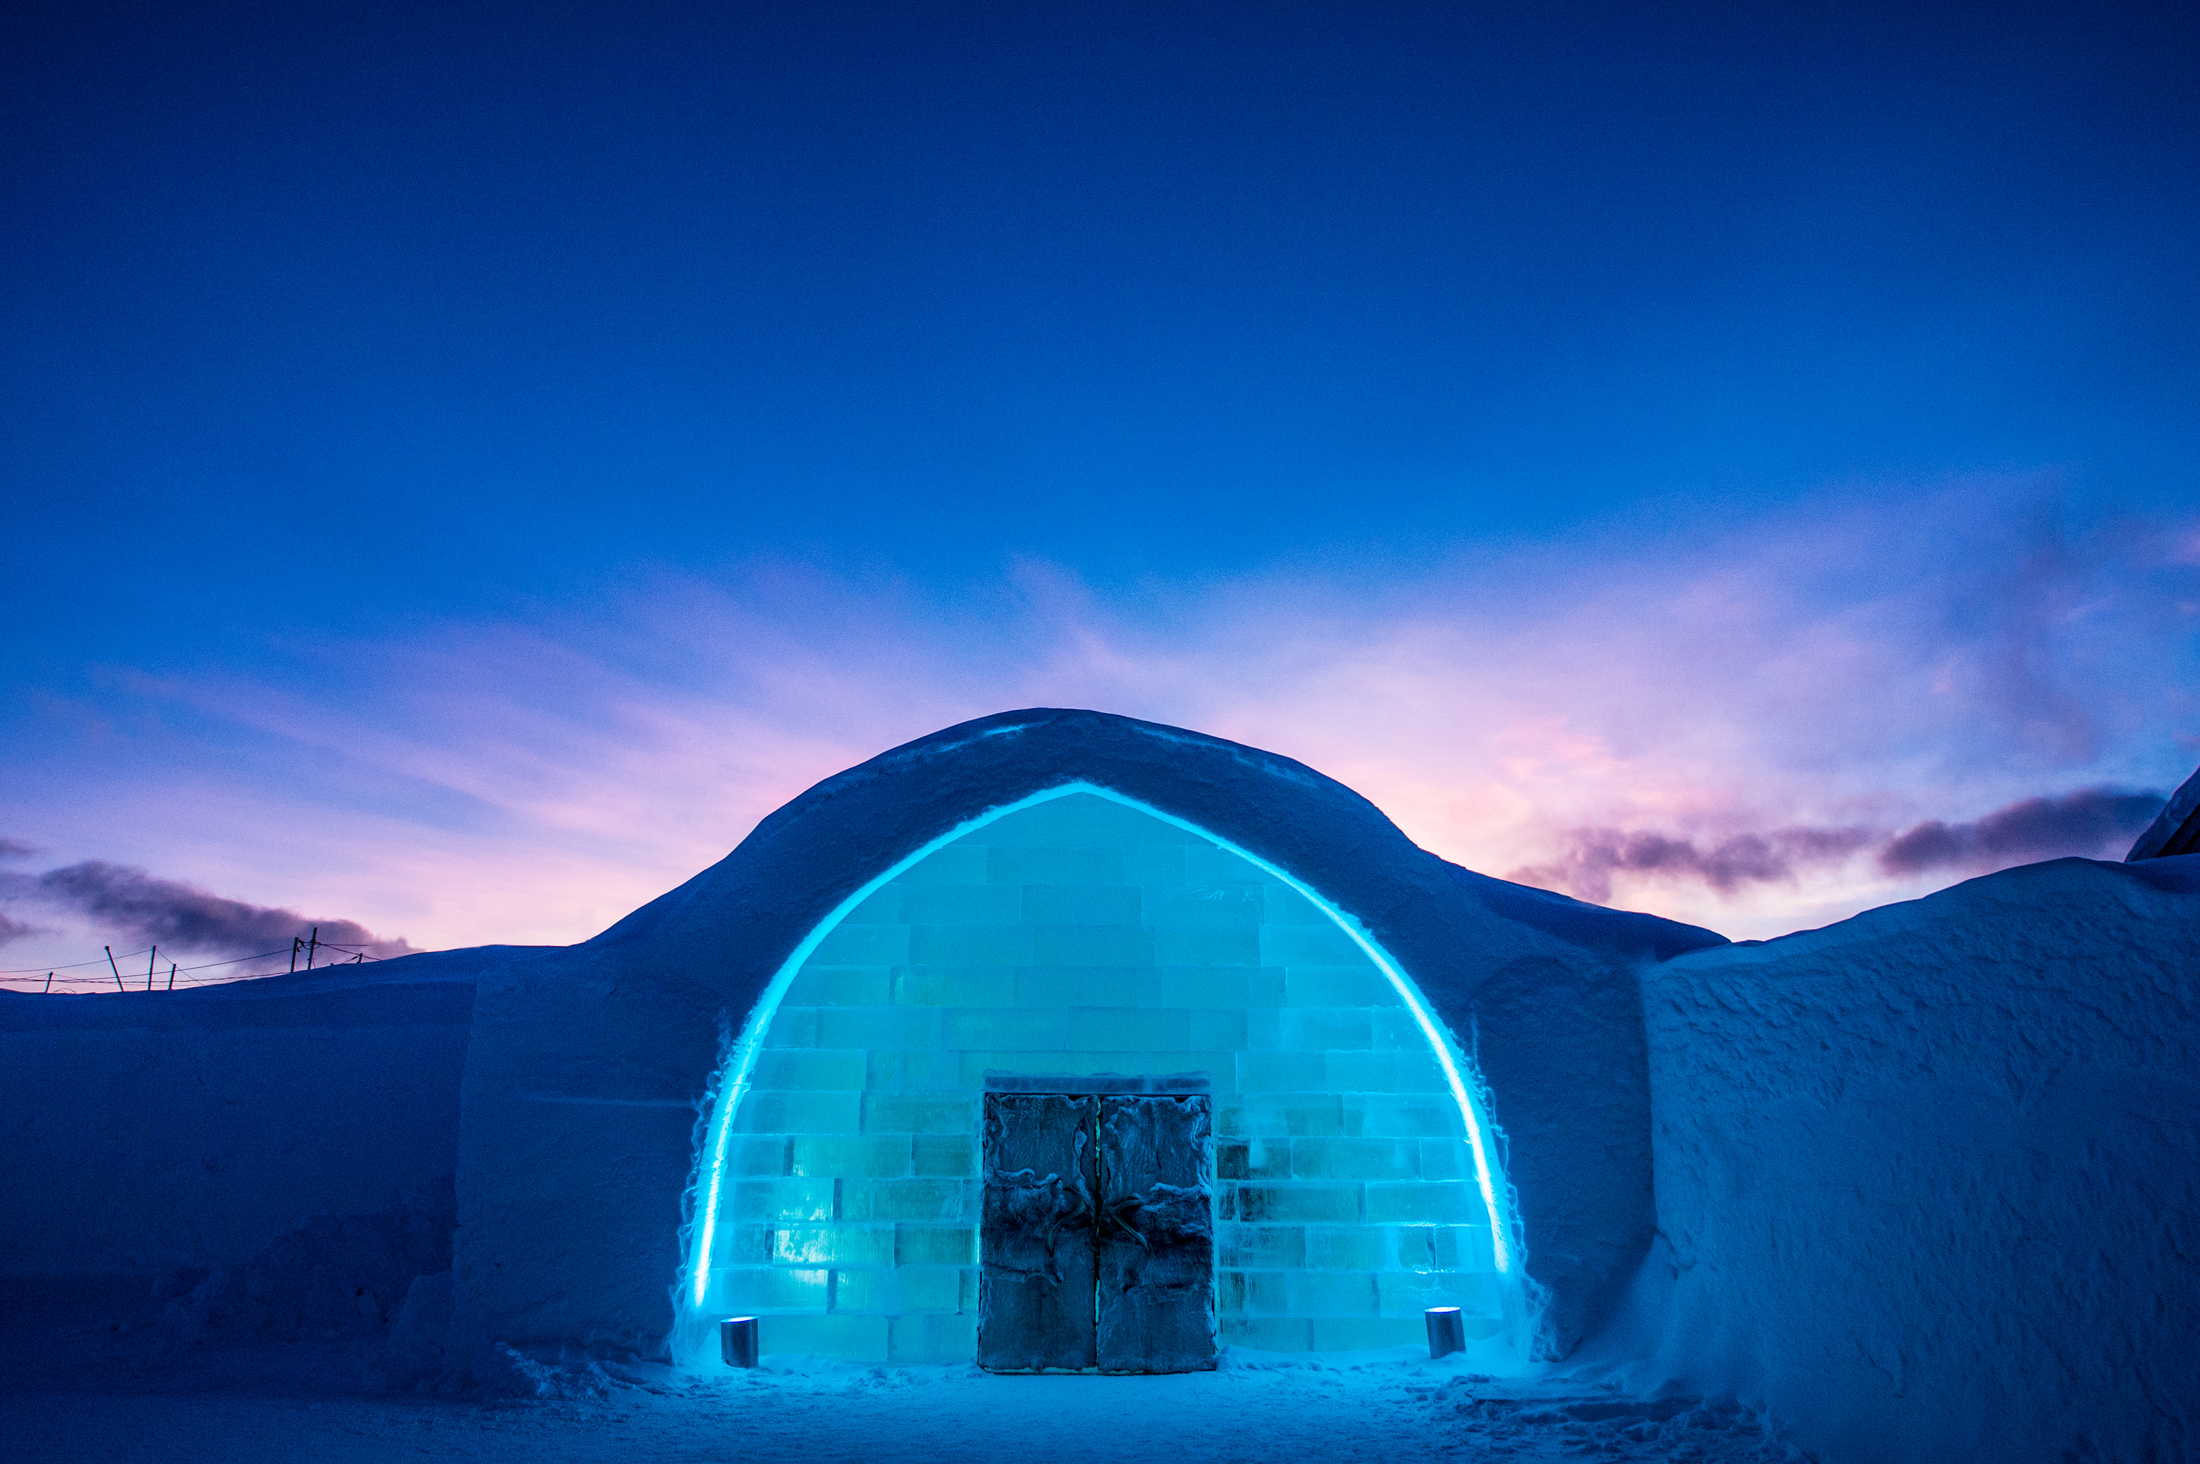 Icehotel entrance of the ice hotel blue twilight